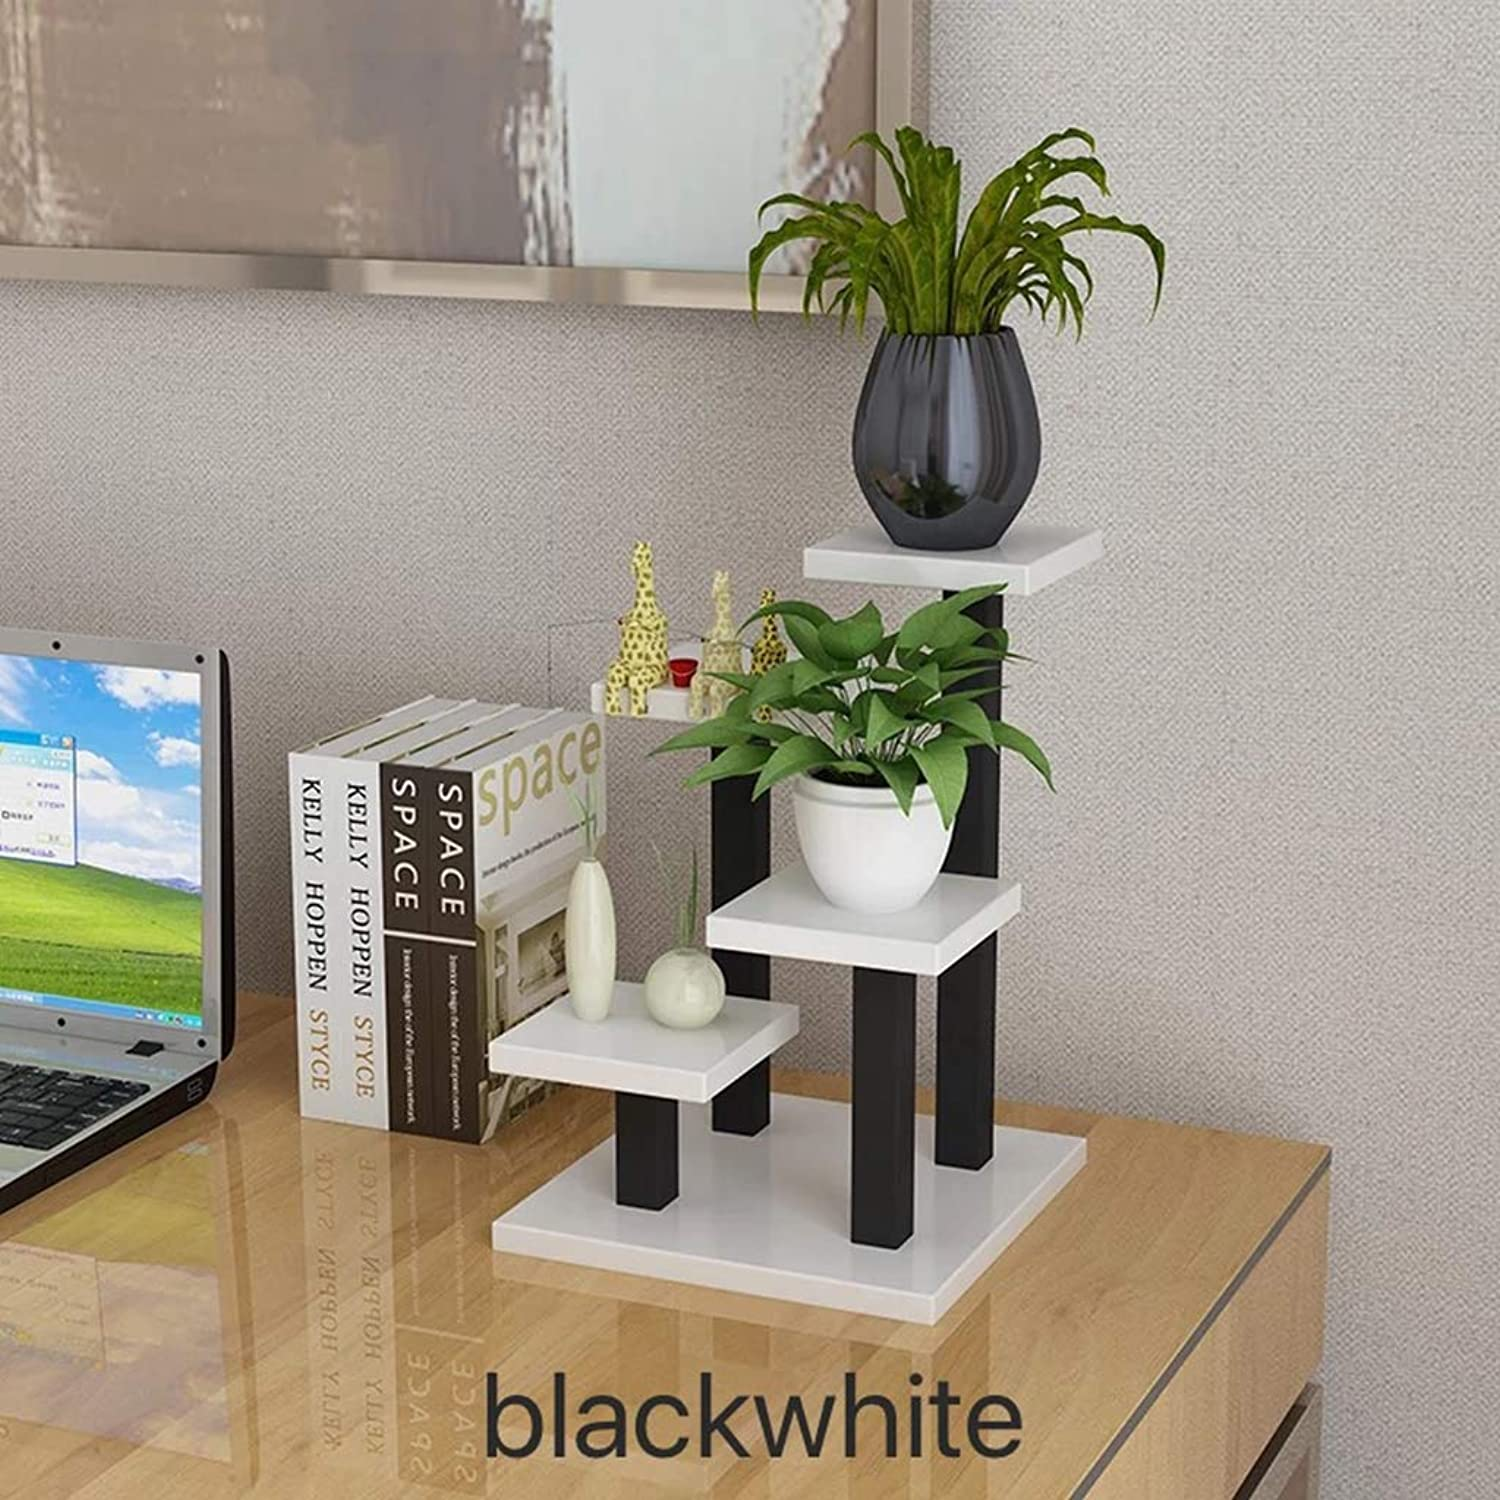 Function Multi-Layer Stand Small Flower Simple Creative Mini Desk Office Surface Plants Fleshy Staircase Decoration,B